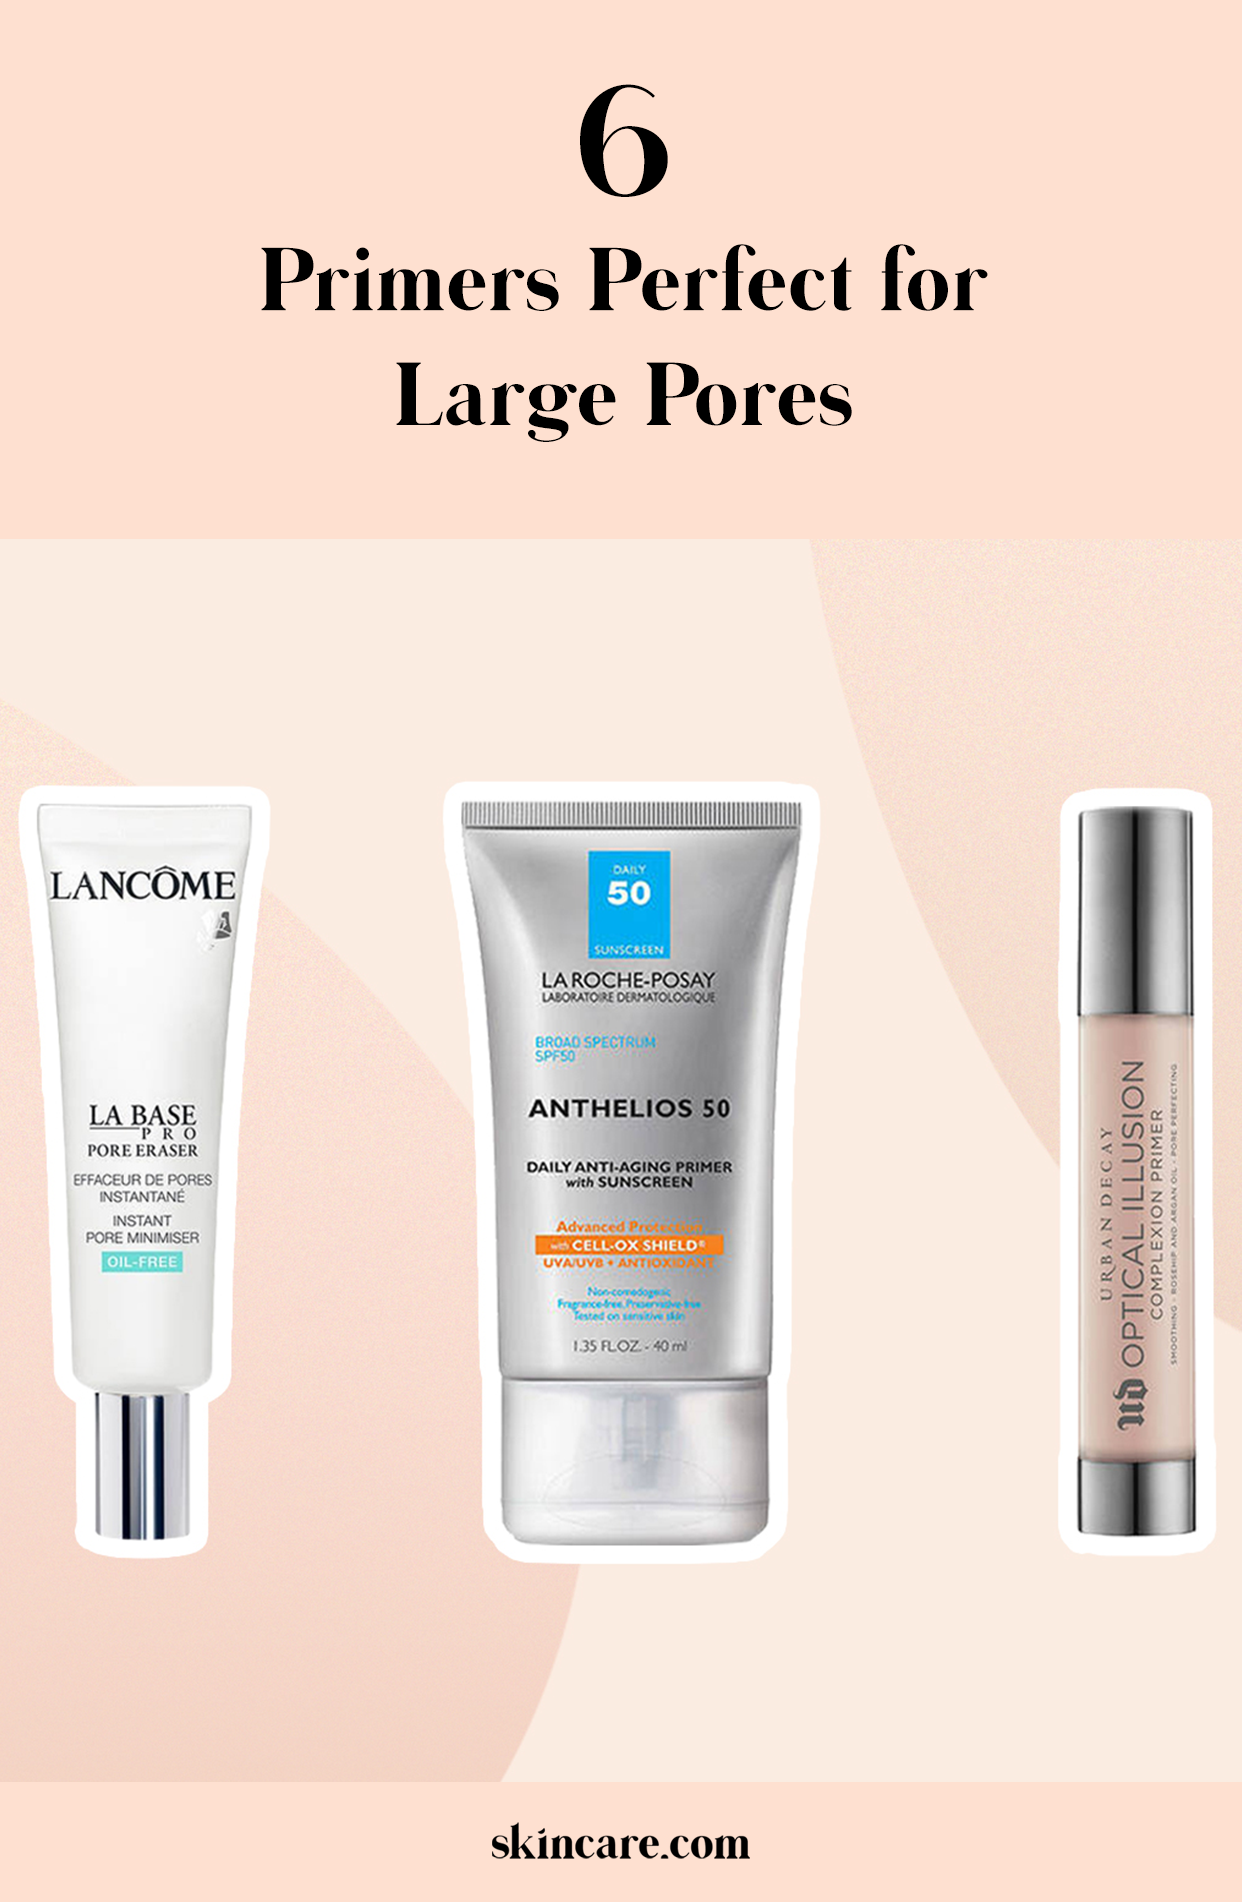 Best Primers For Large Pores Skincare Com By L Oreal Large Pores Cream For Oily Skin Best Skincare Products